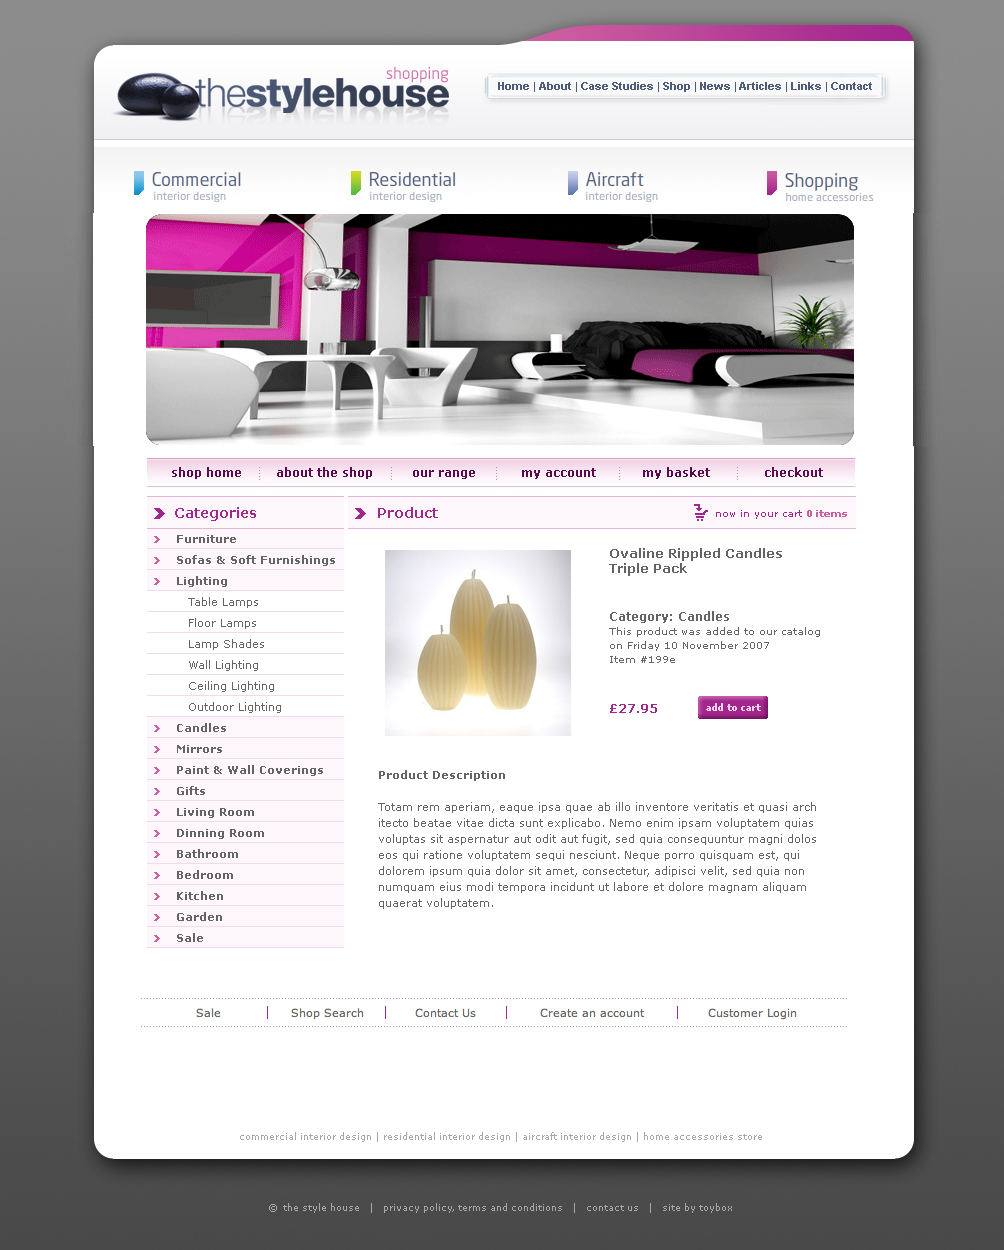 stylehouse_shop_product_pt.png